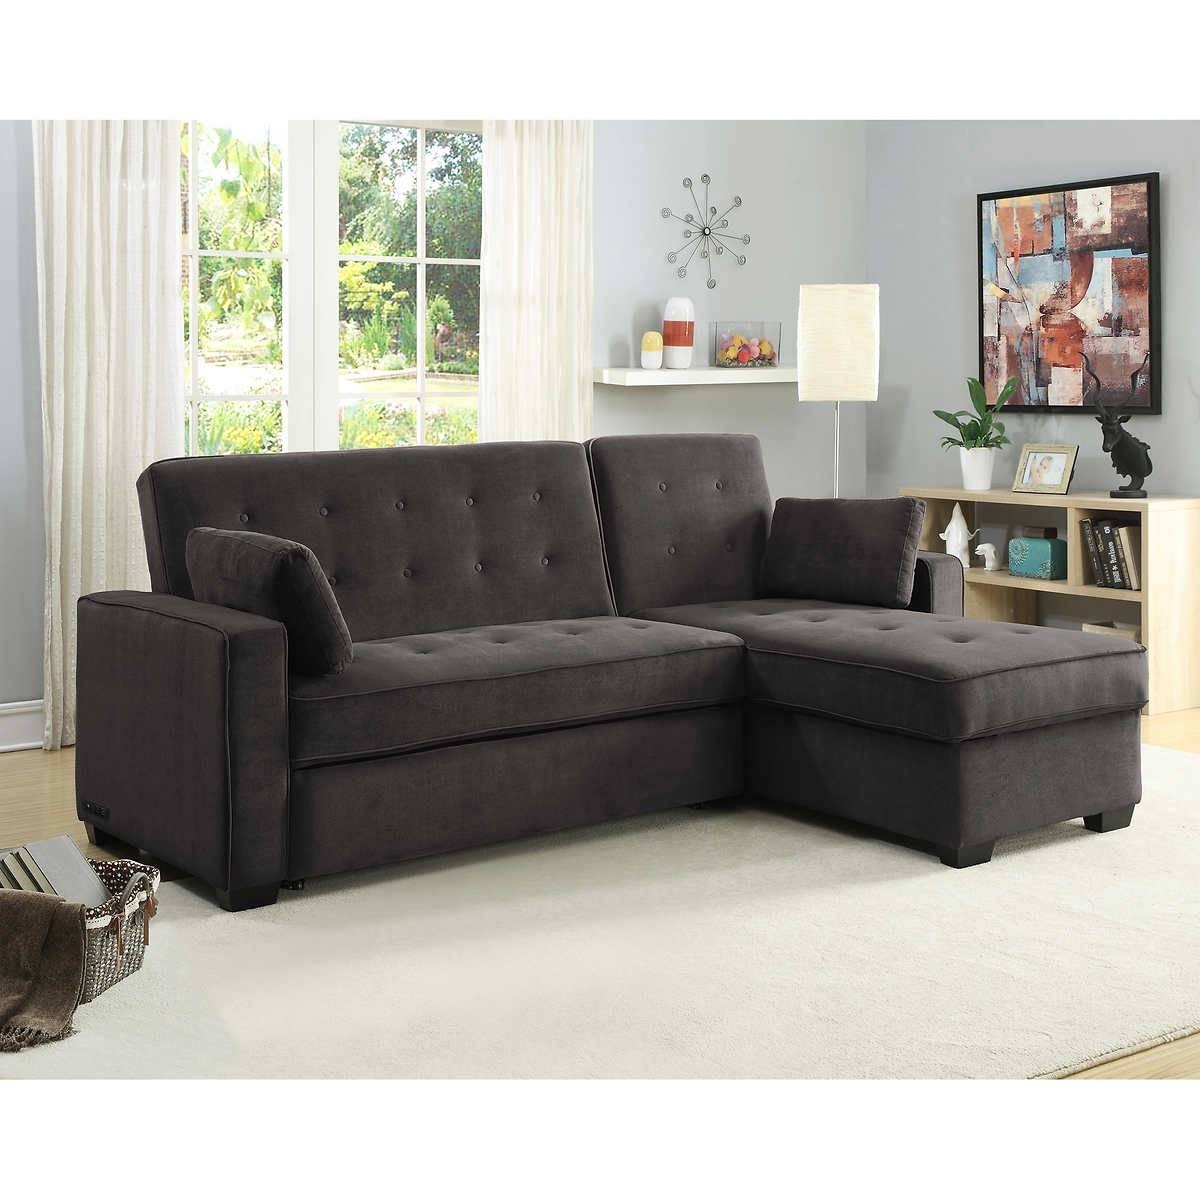 Sofas Center : Costcoower Reclining Sofa Recliner Berkline Sofas pertaining to Berkline Sofa Recliner (Image 25 of 30)